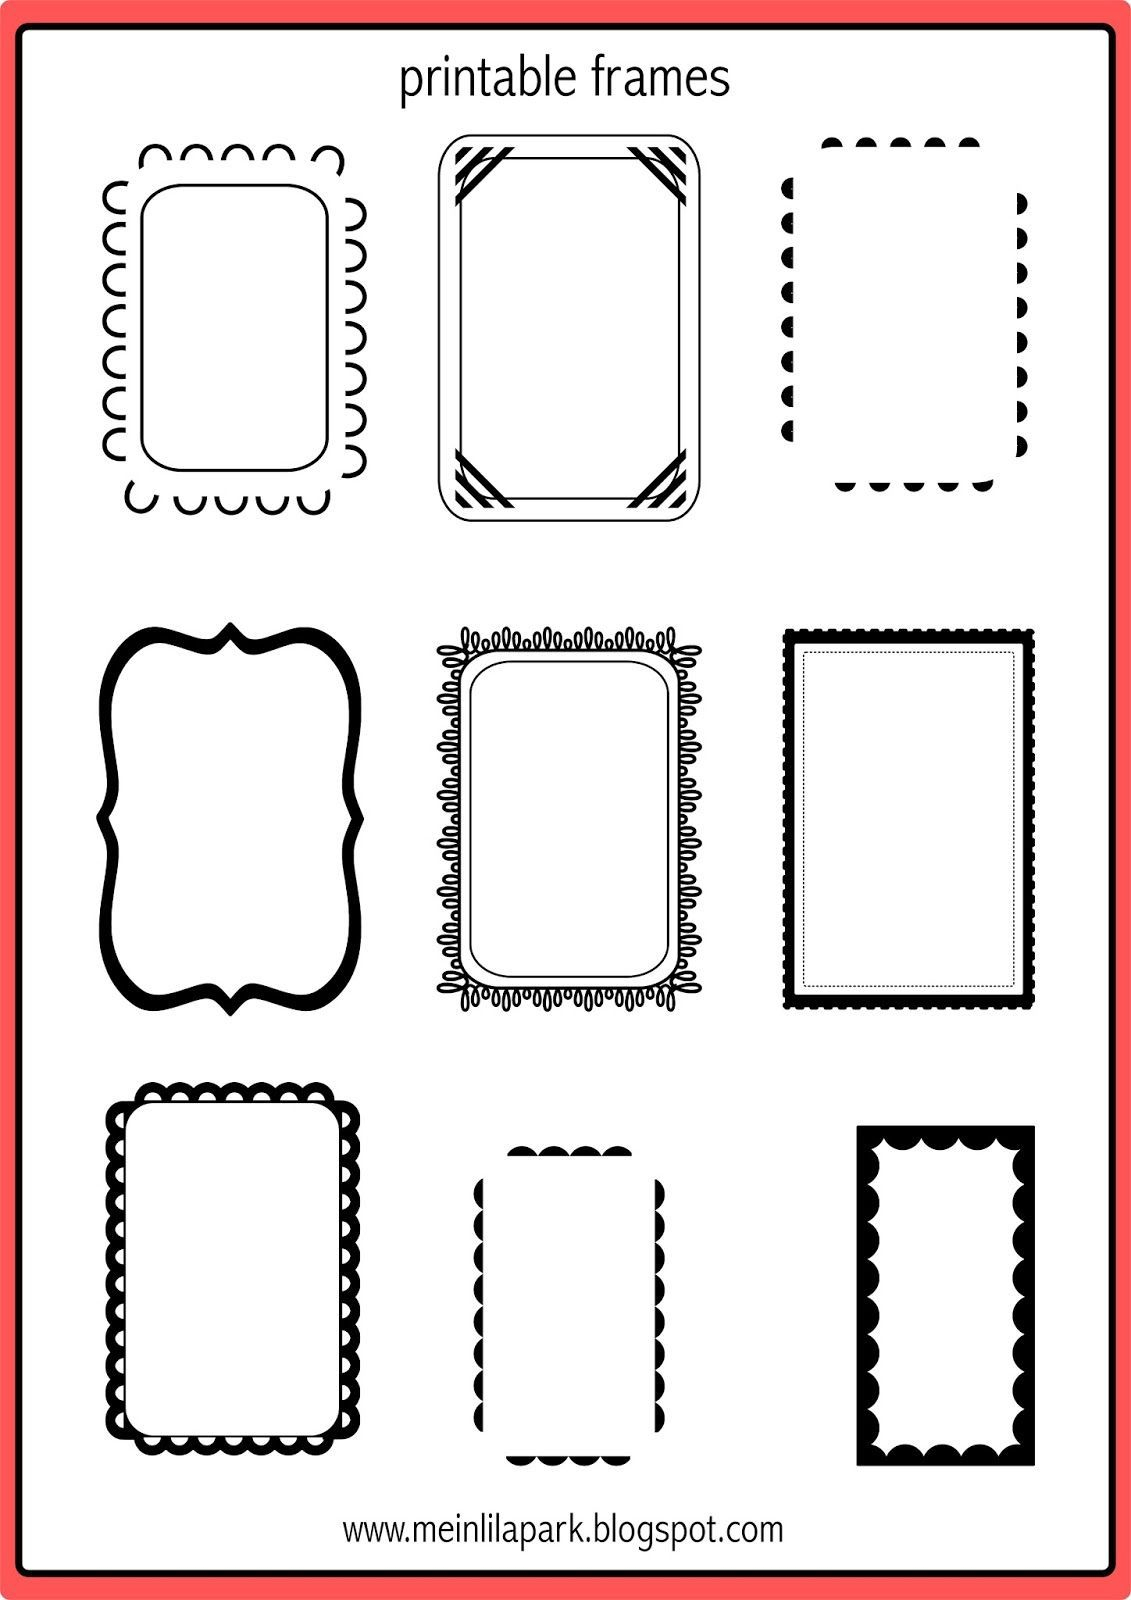 35+ Inspiration Picture Of Scrapbooking Frames Printable | Scrapbook - Free Printable Frames For Scrapbooking